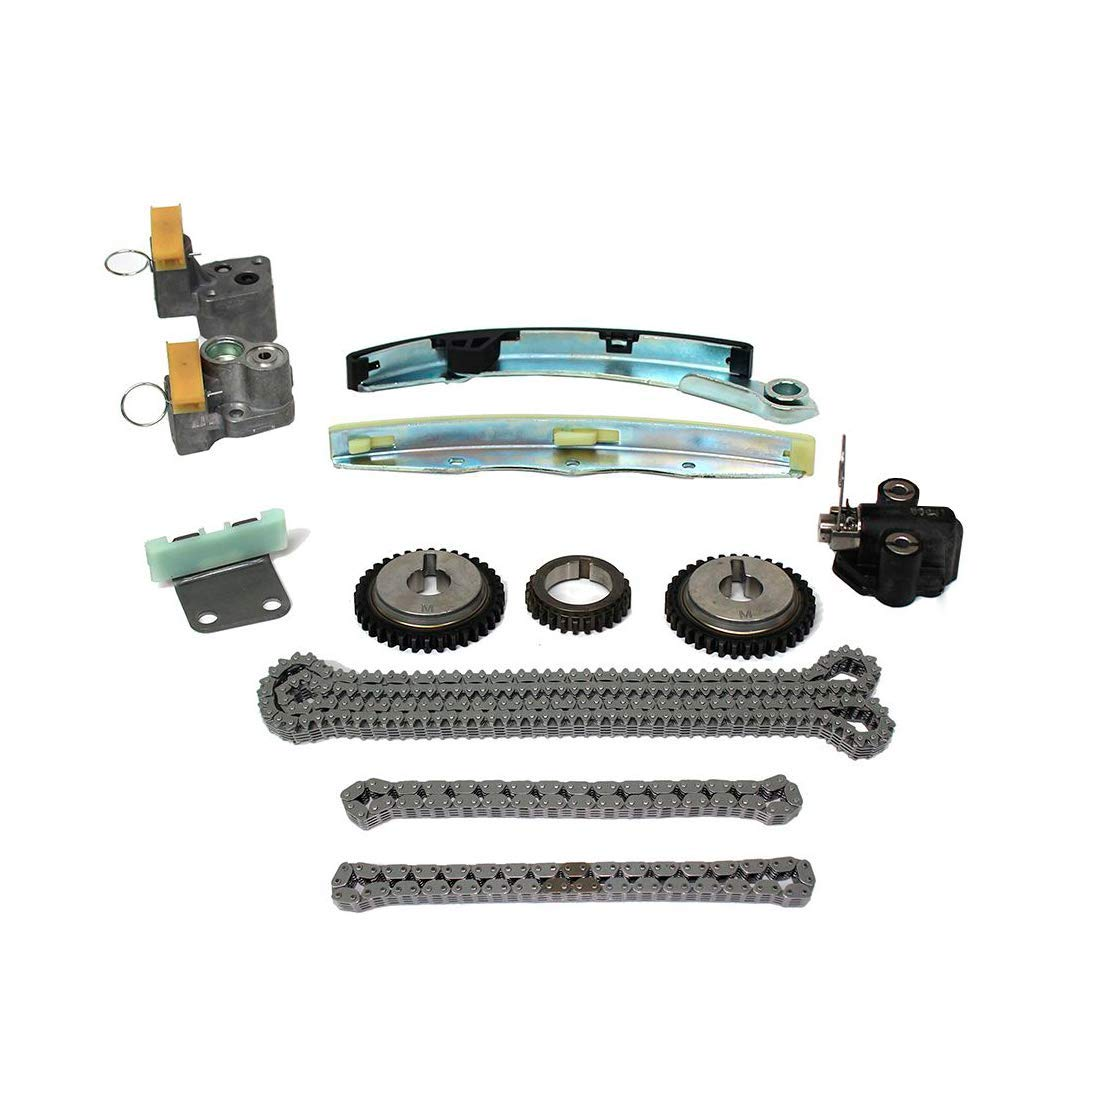 Quest Maxima DOHC VQ35DE 3498cc 24V V6 3.5L Nissan//Altima DNJ TK645 Timing Chain Kit for 2004-2009